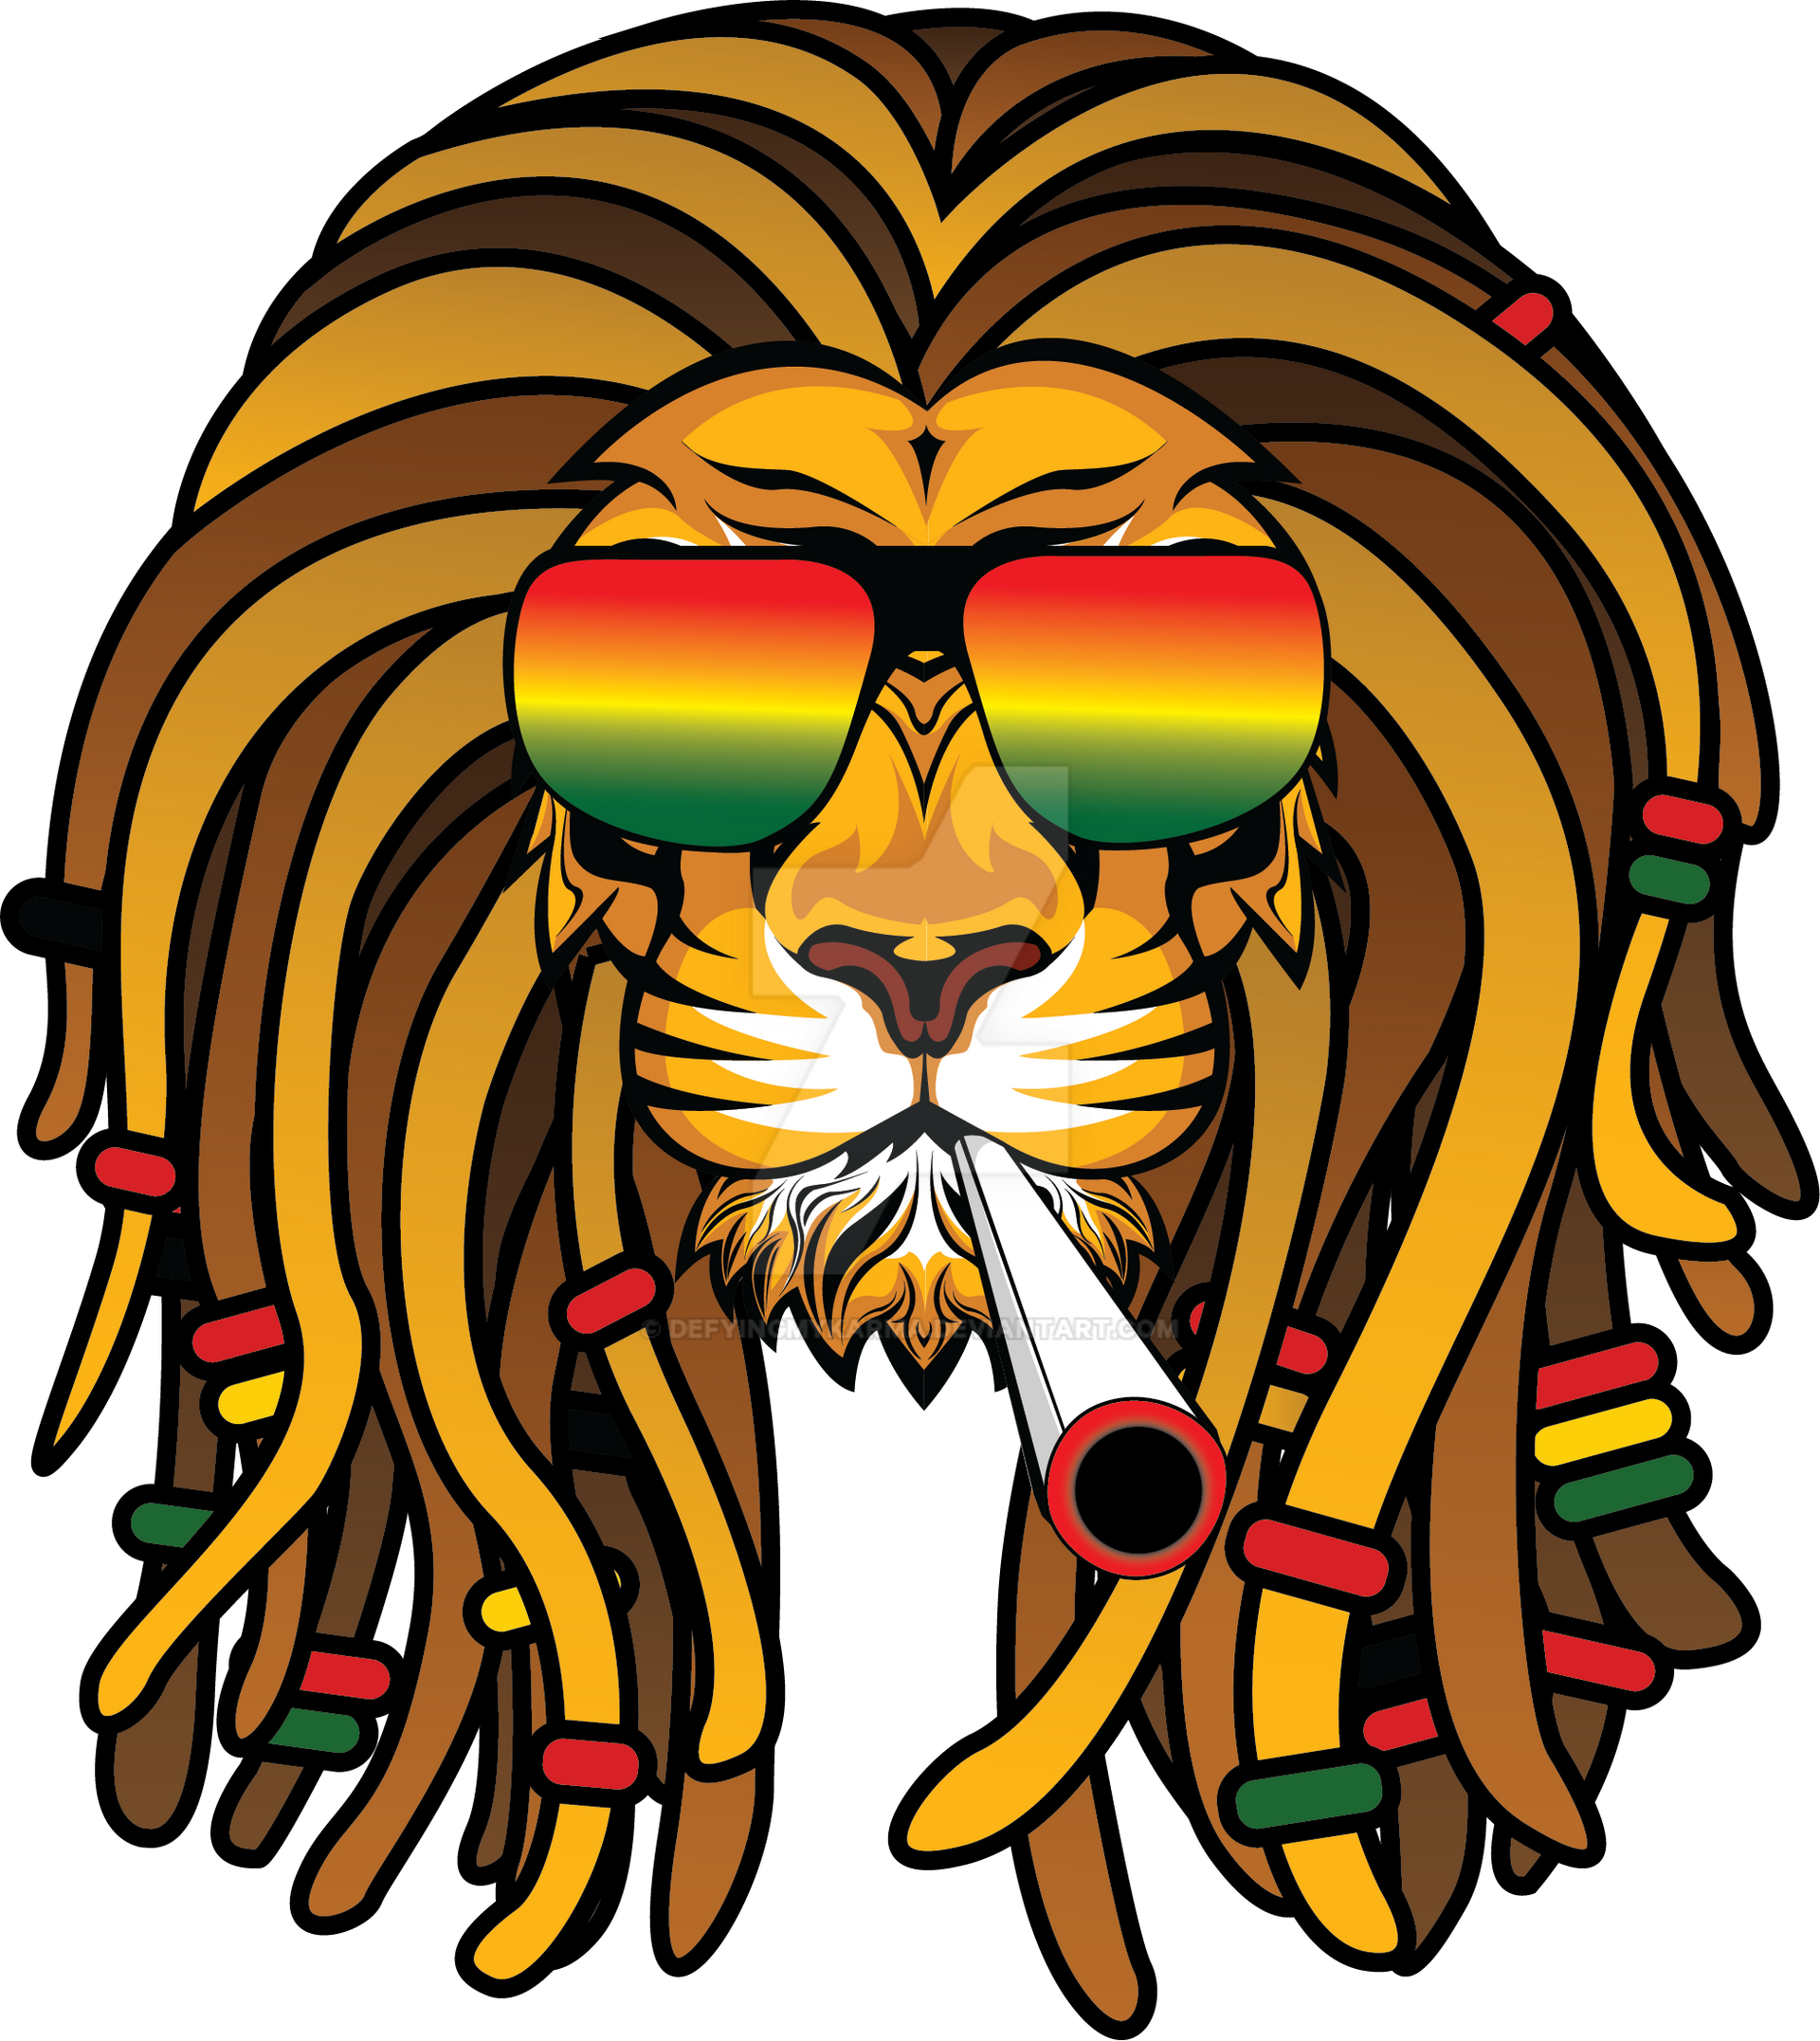 rasta lion logo tattoo by defyingmykarma on deviantart rasta lion logo tattoo by